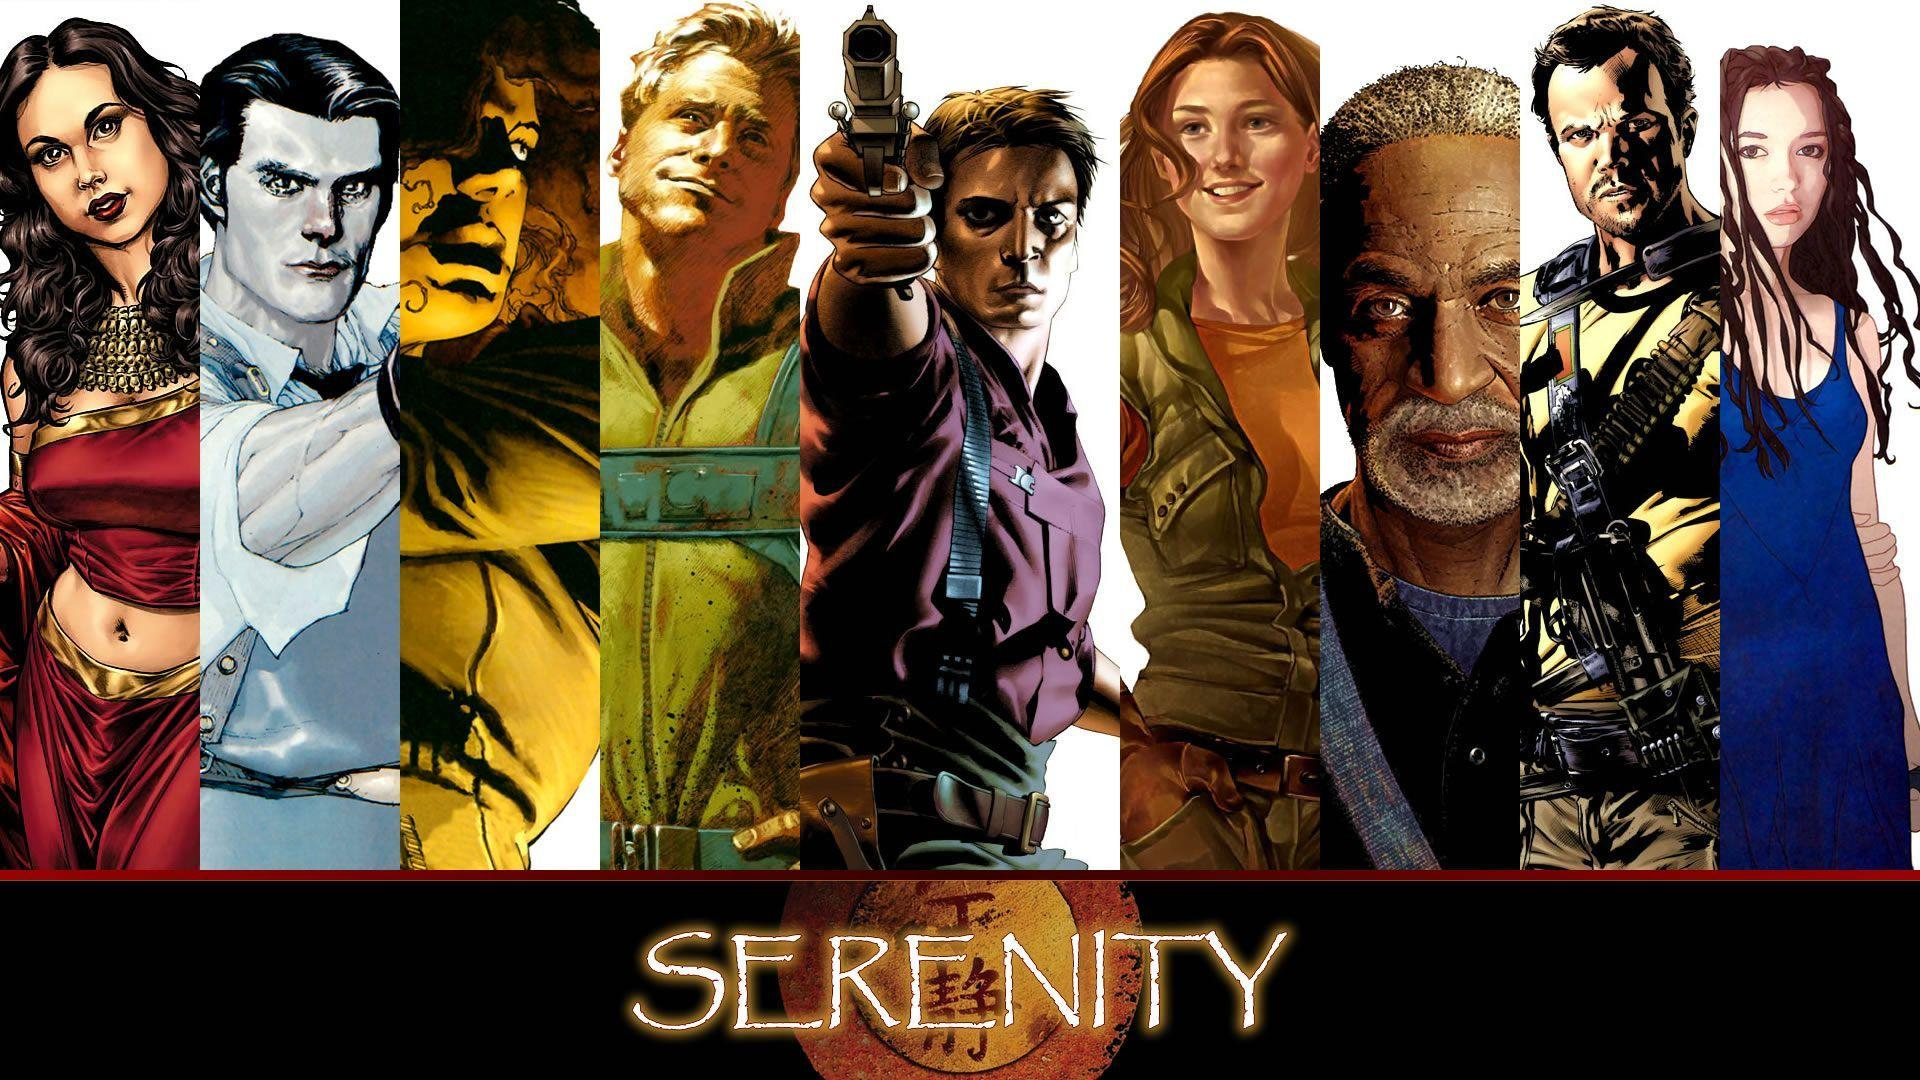 Awesome Firefly wallpapers collage using the comics : wallpapers